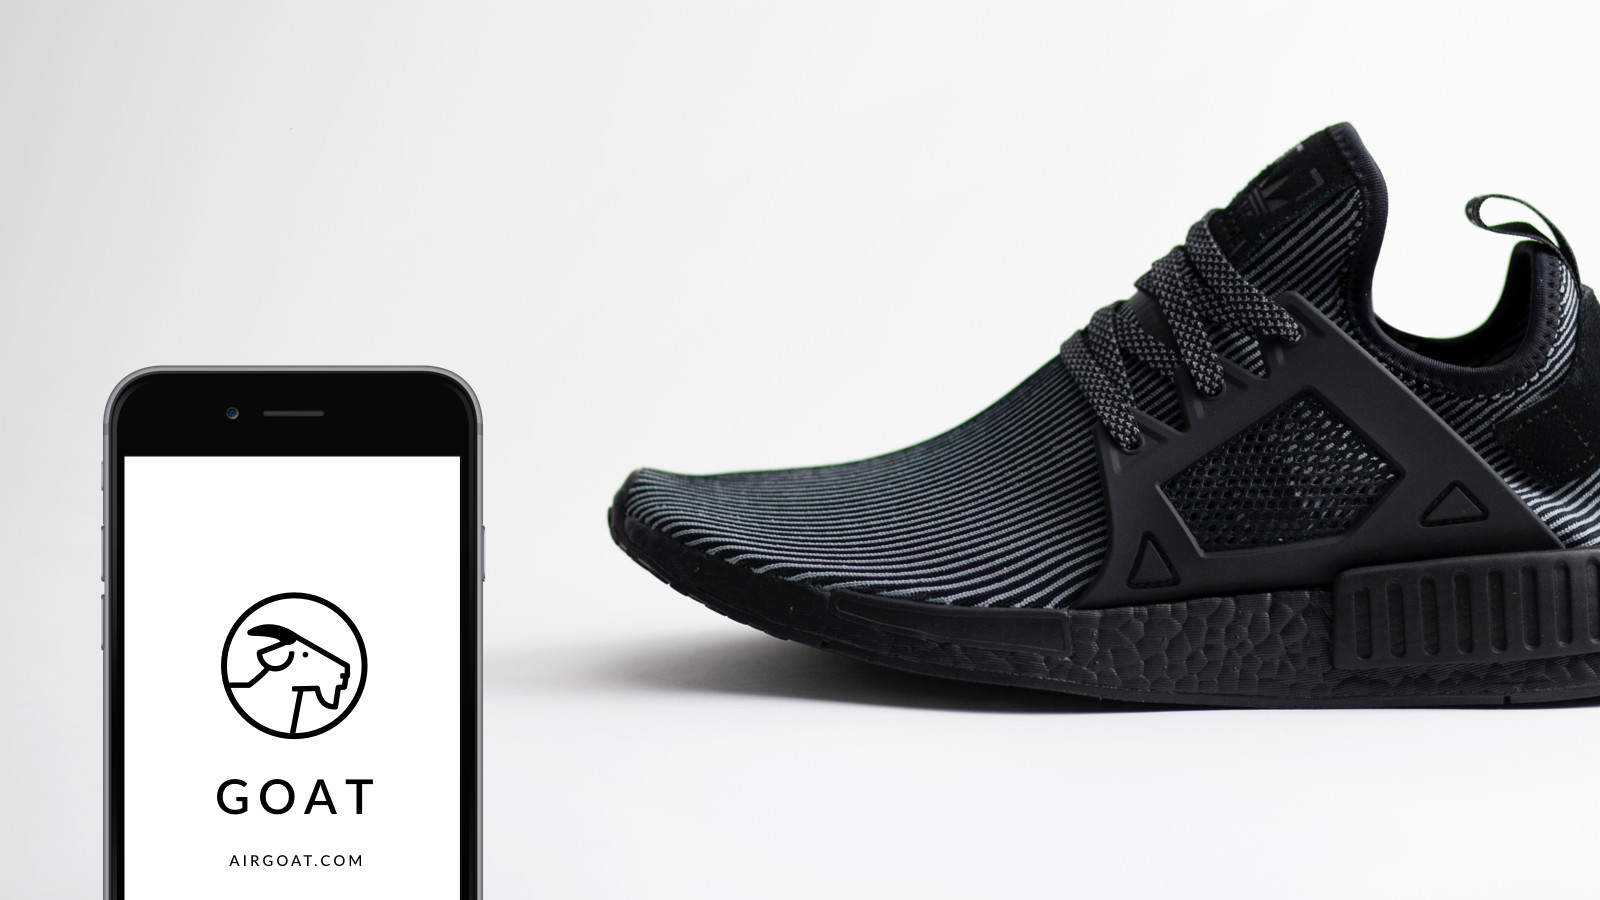 GOAT is a sneaker app that should be dead — but is making millions instead  - Recode